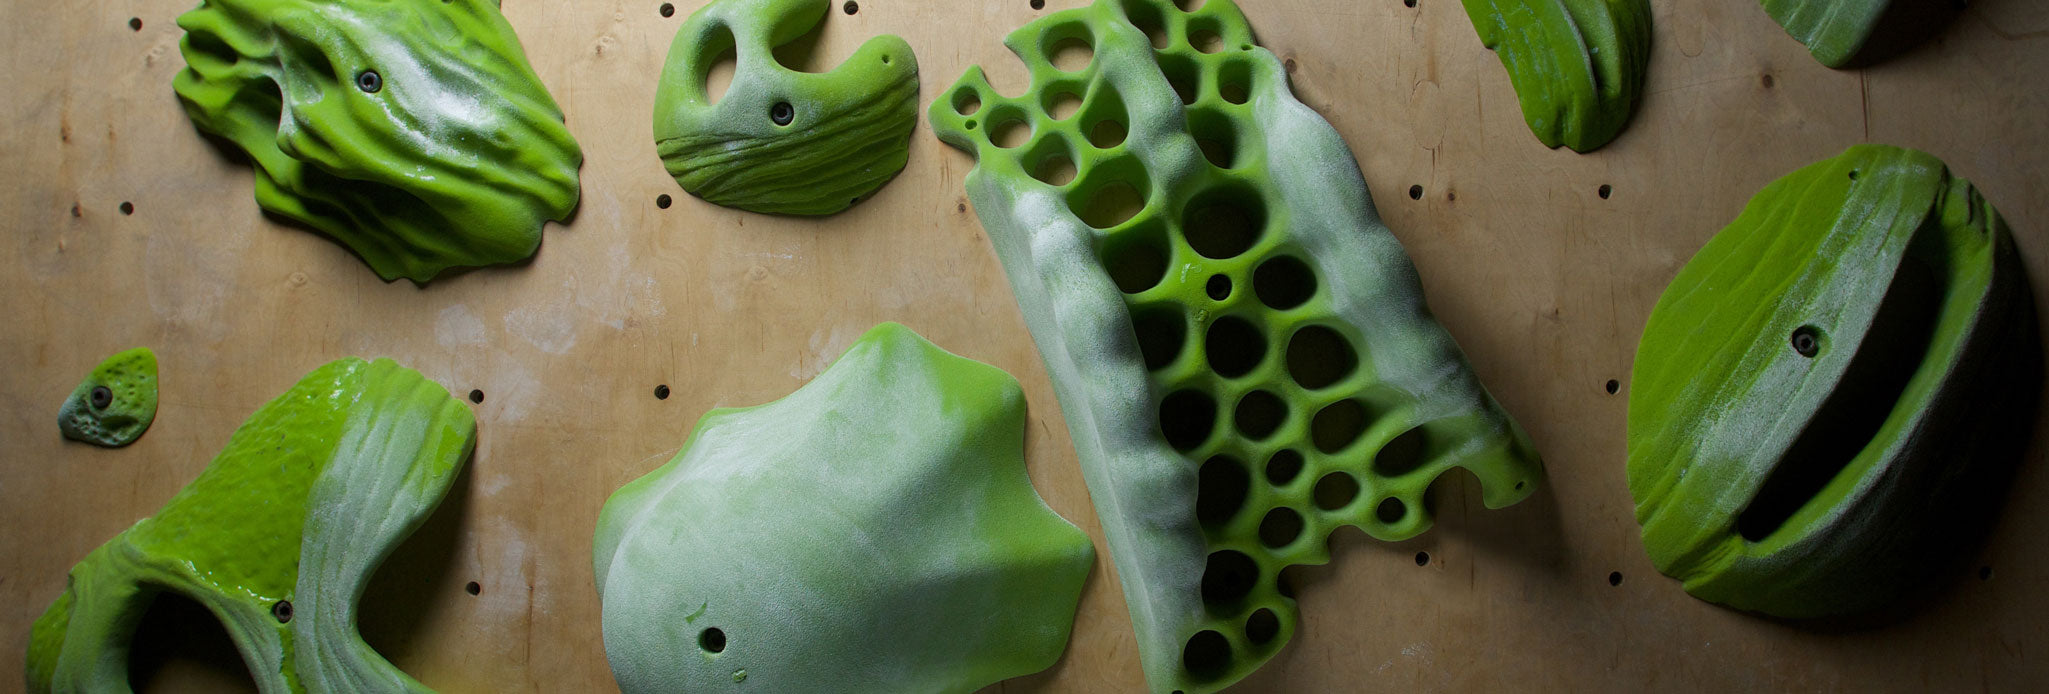 3D Hold Printing Gets Real | Climbing Business Journal